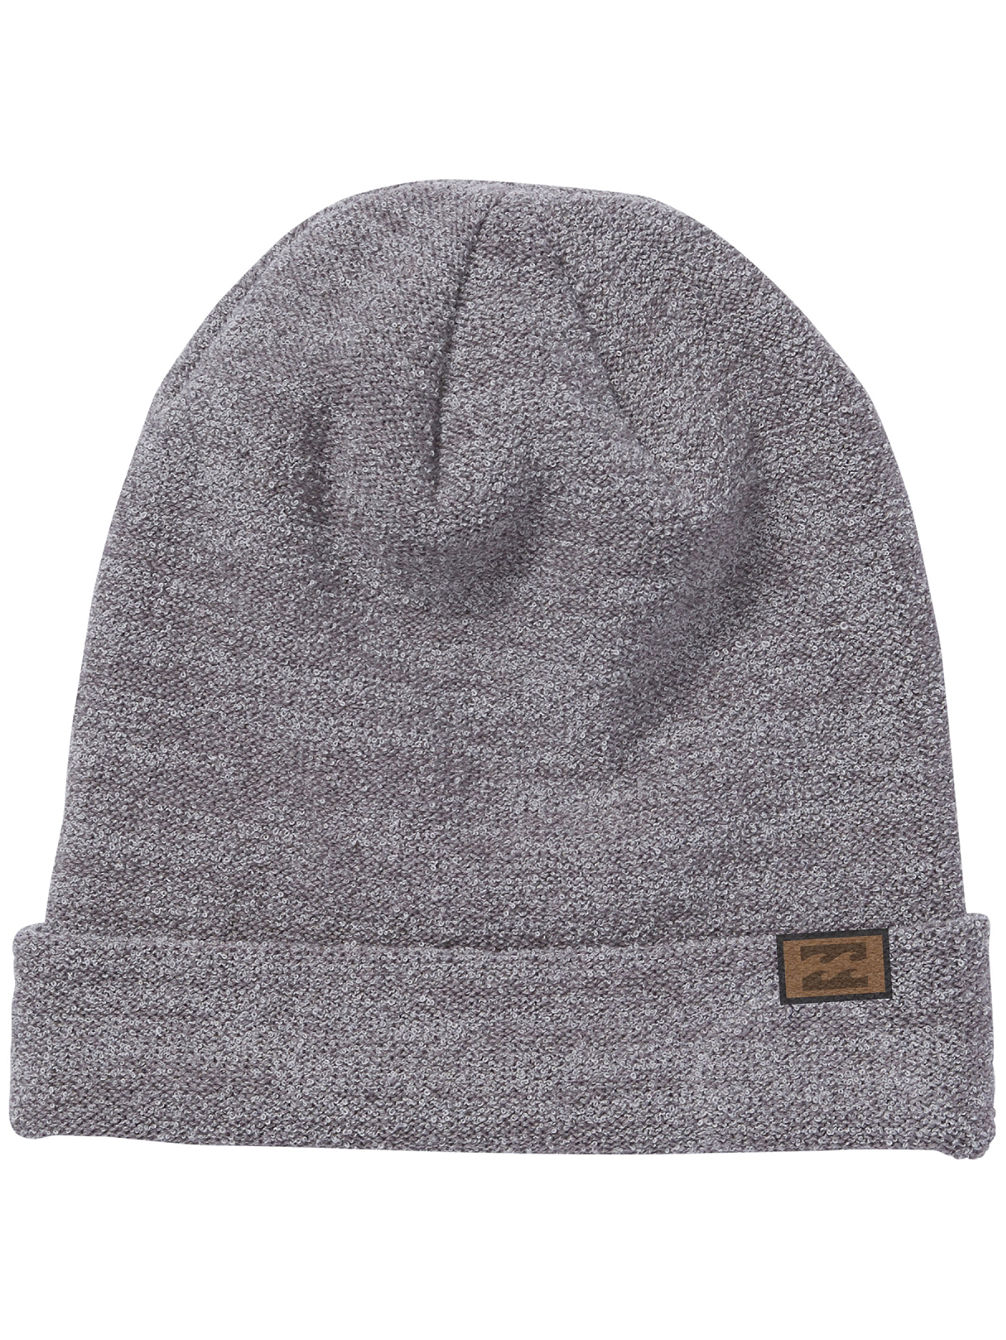 Bright Nights Beanie